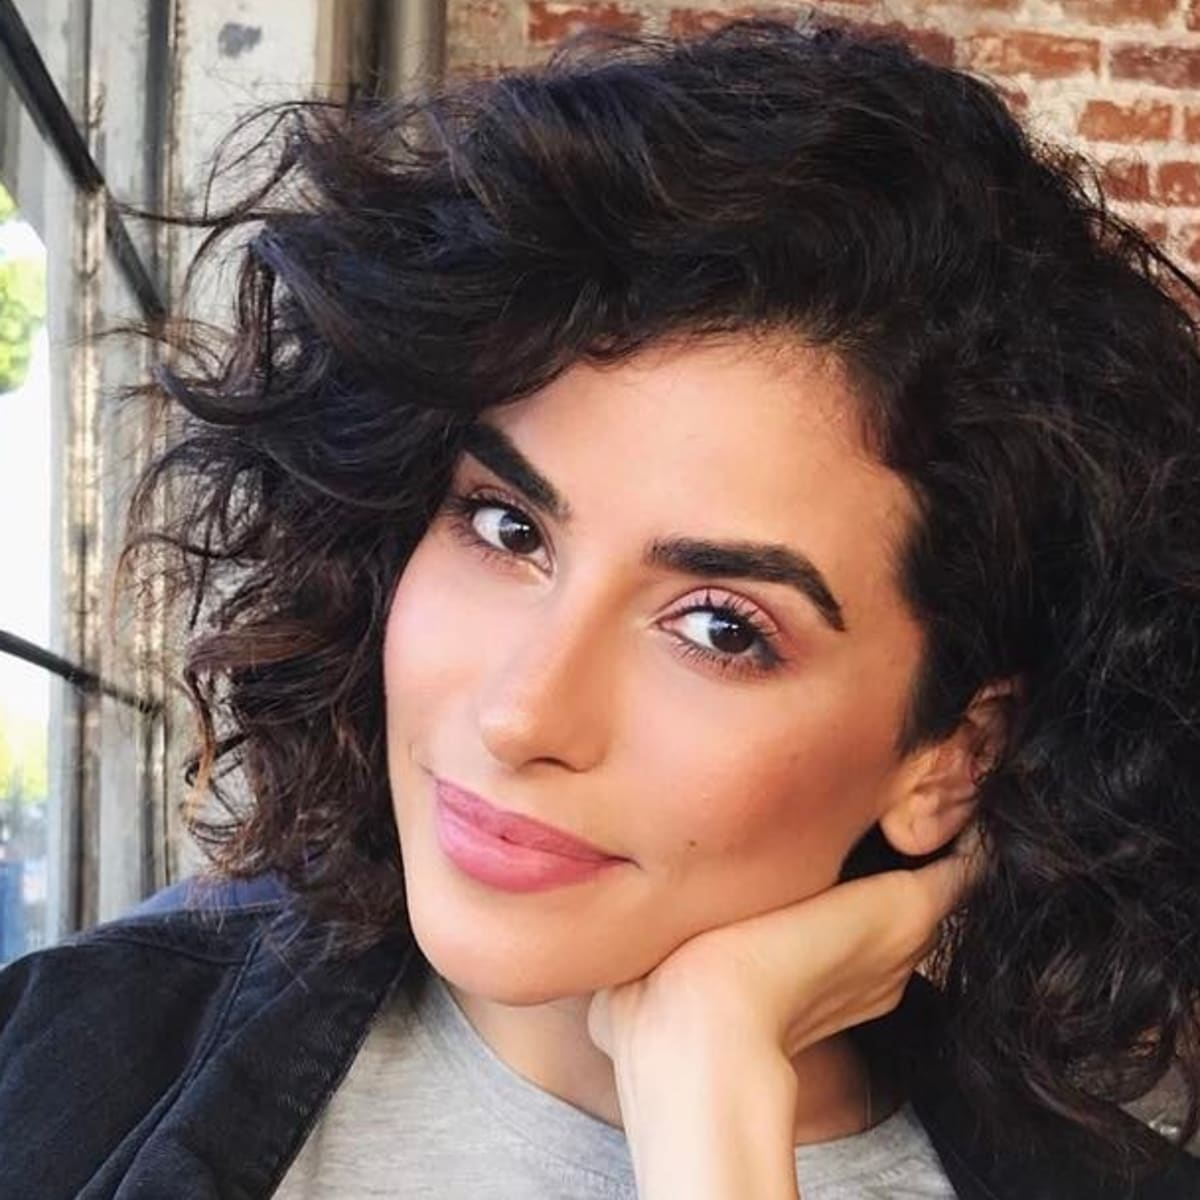 How To Style A Blunt Bob When You Have Curly Hair Fashionista